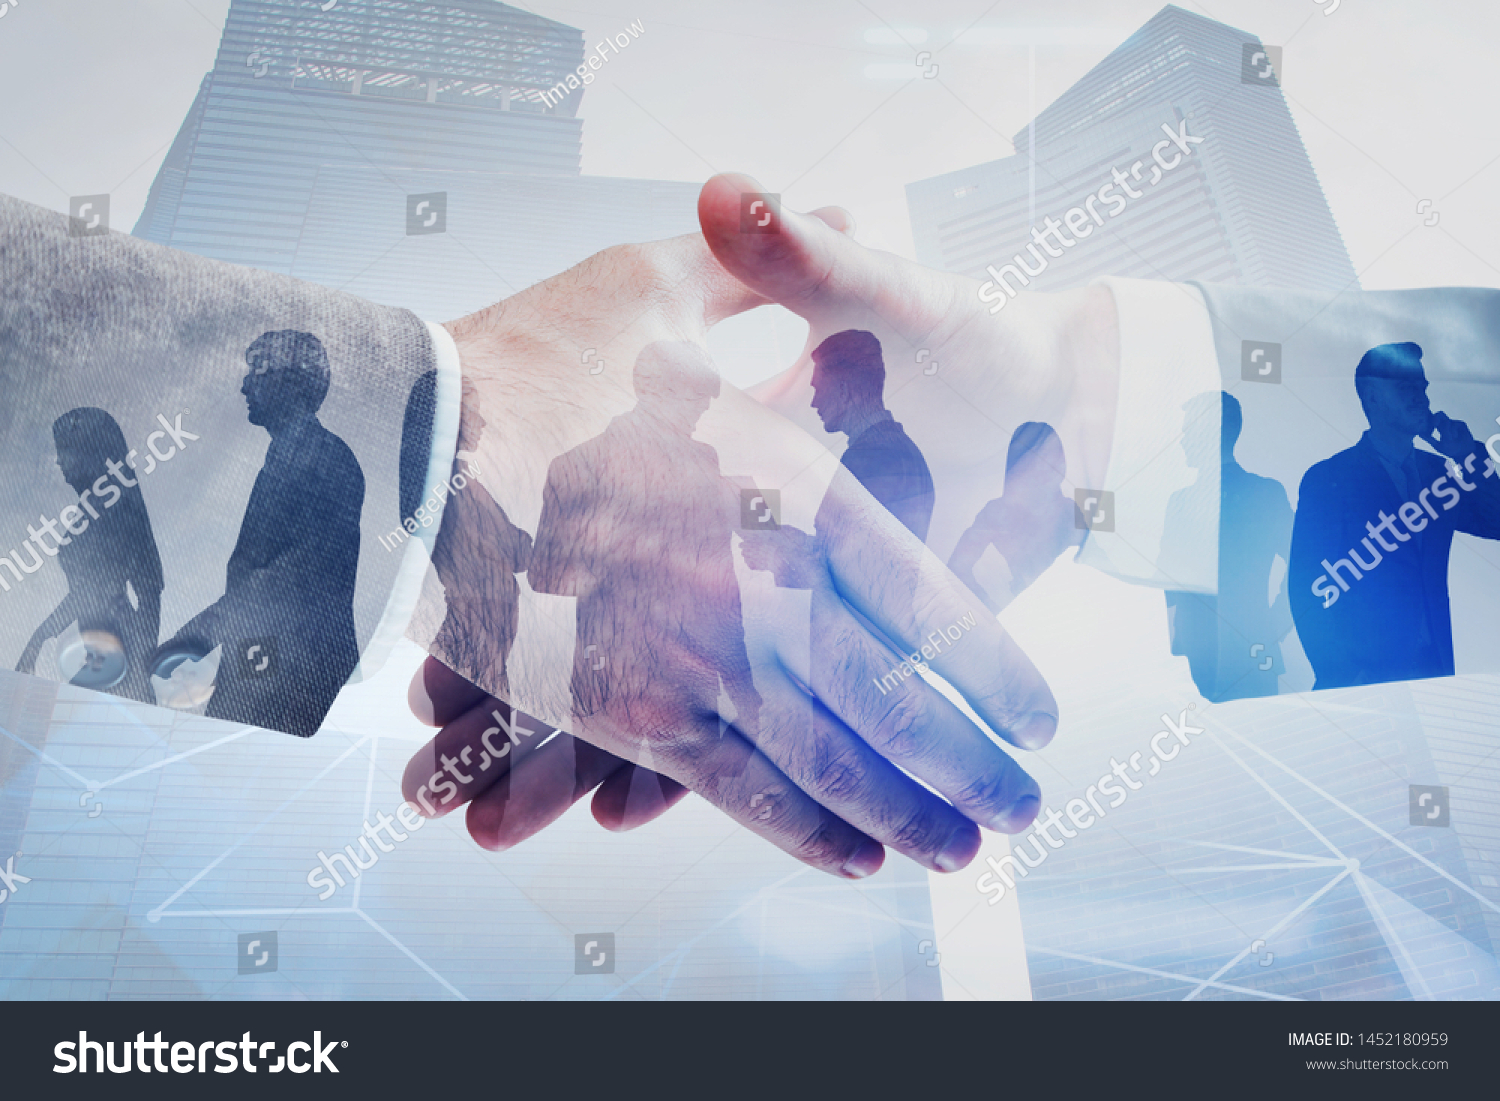 Close up of two businessmen shaking hands in modern city with double exposure of business people and network interface. Concept of connection and partnership. Toned image #1452180959